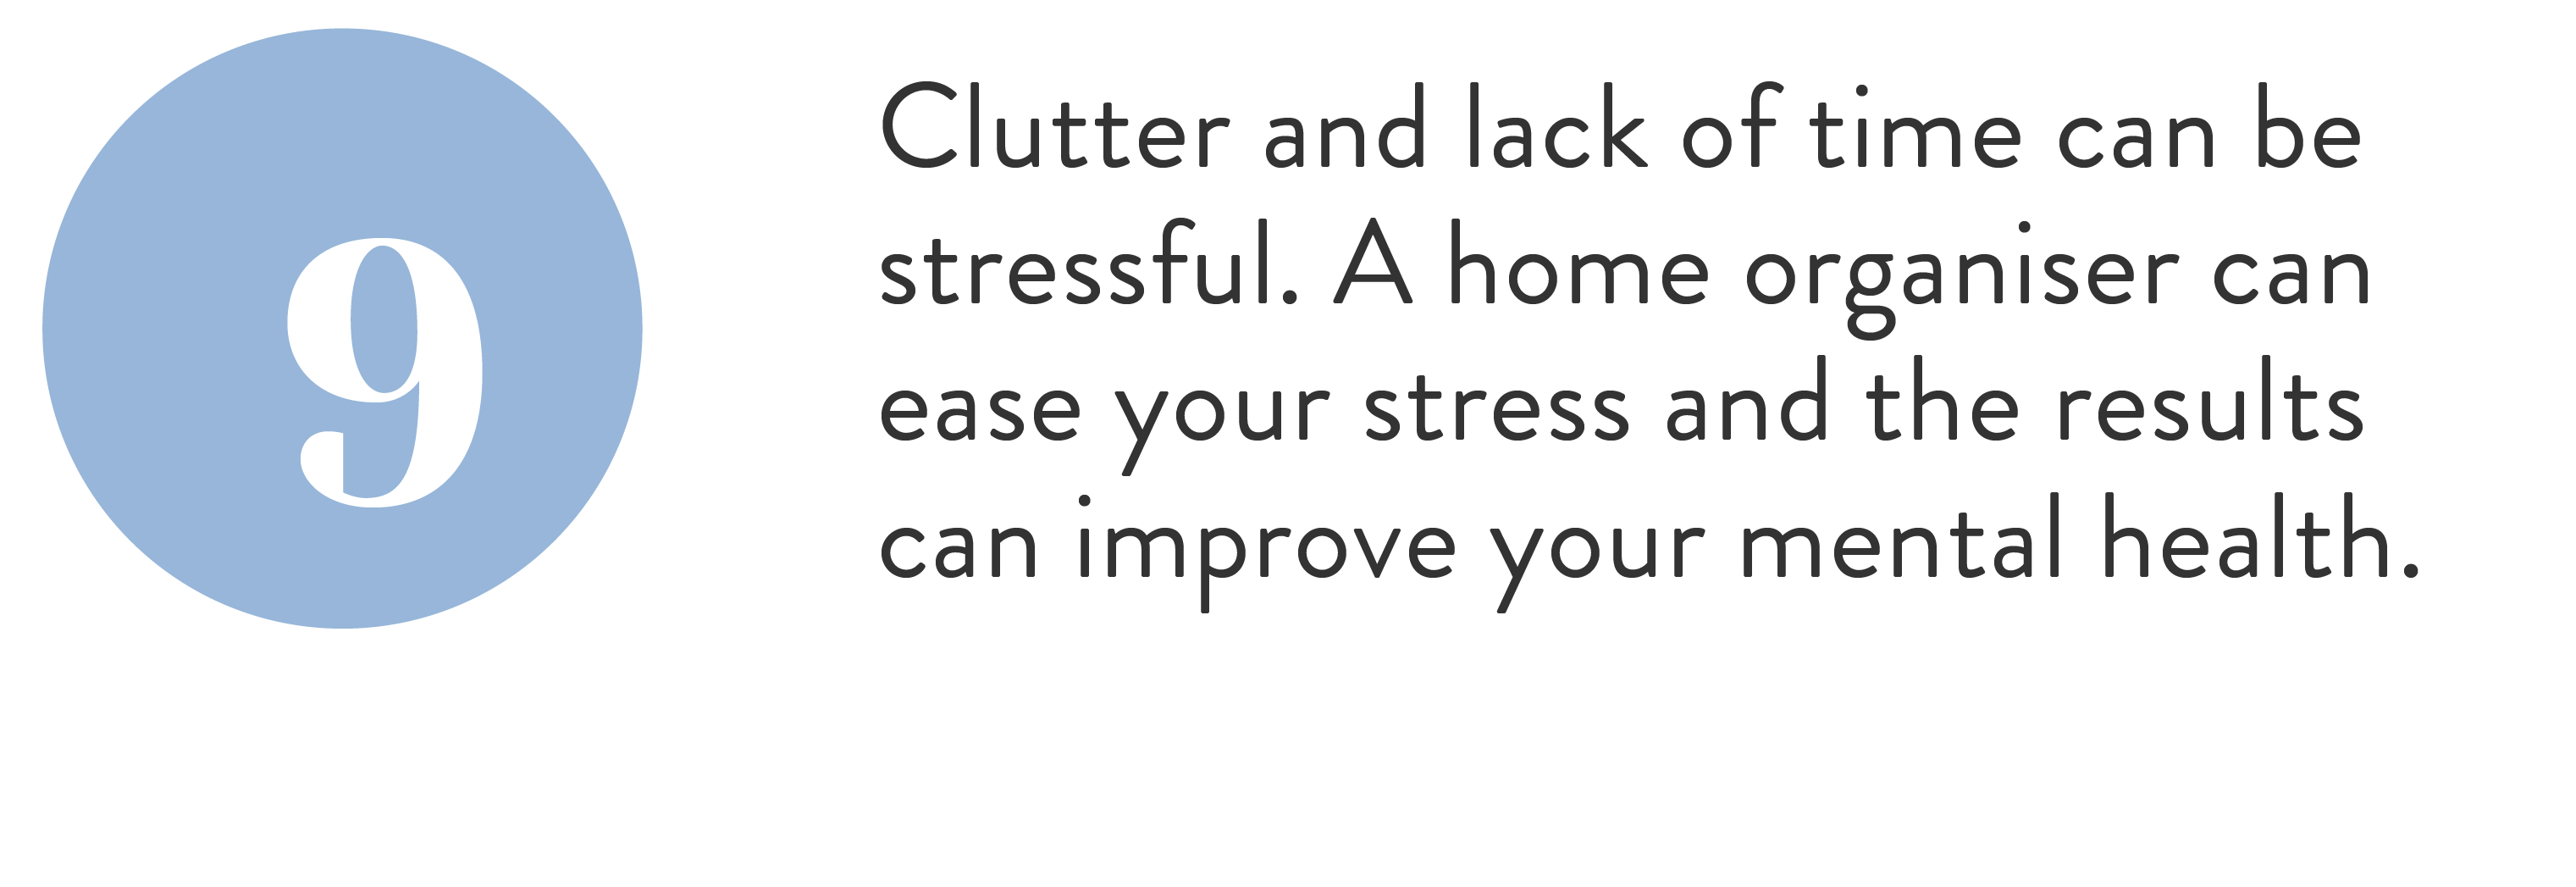 organisation to improve your mental health